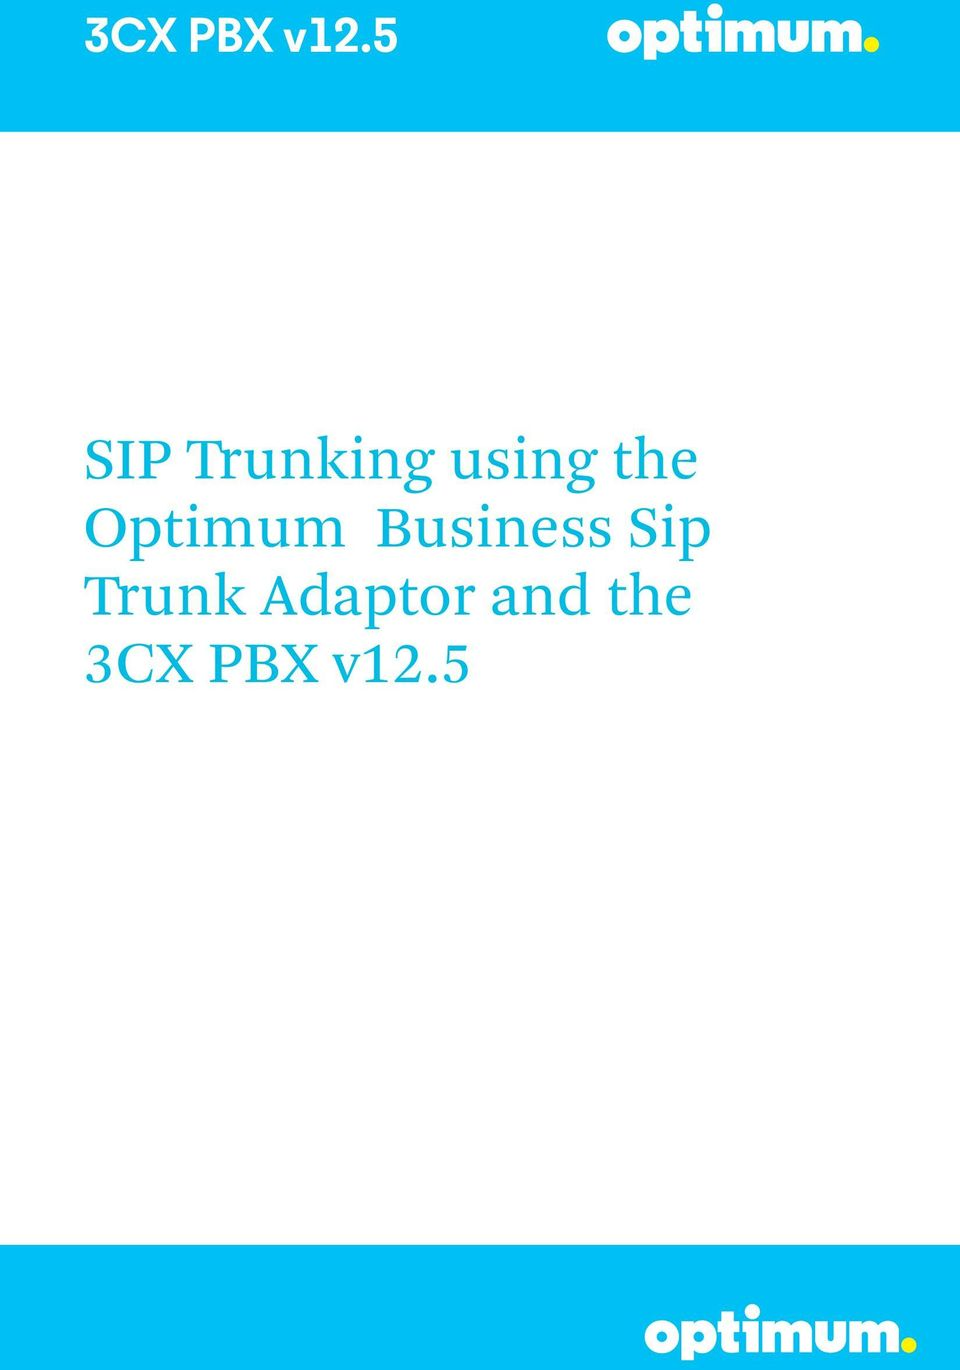 Business Sip Trunk